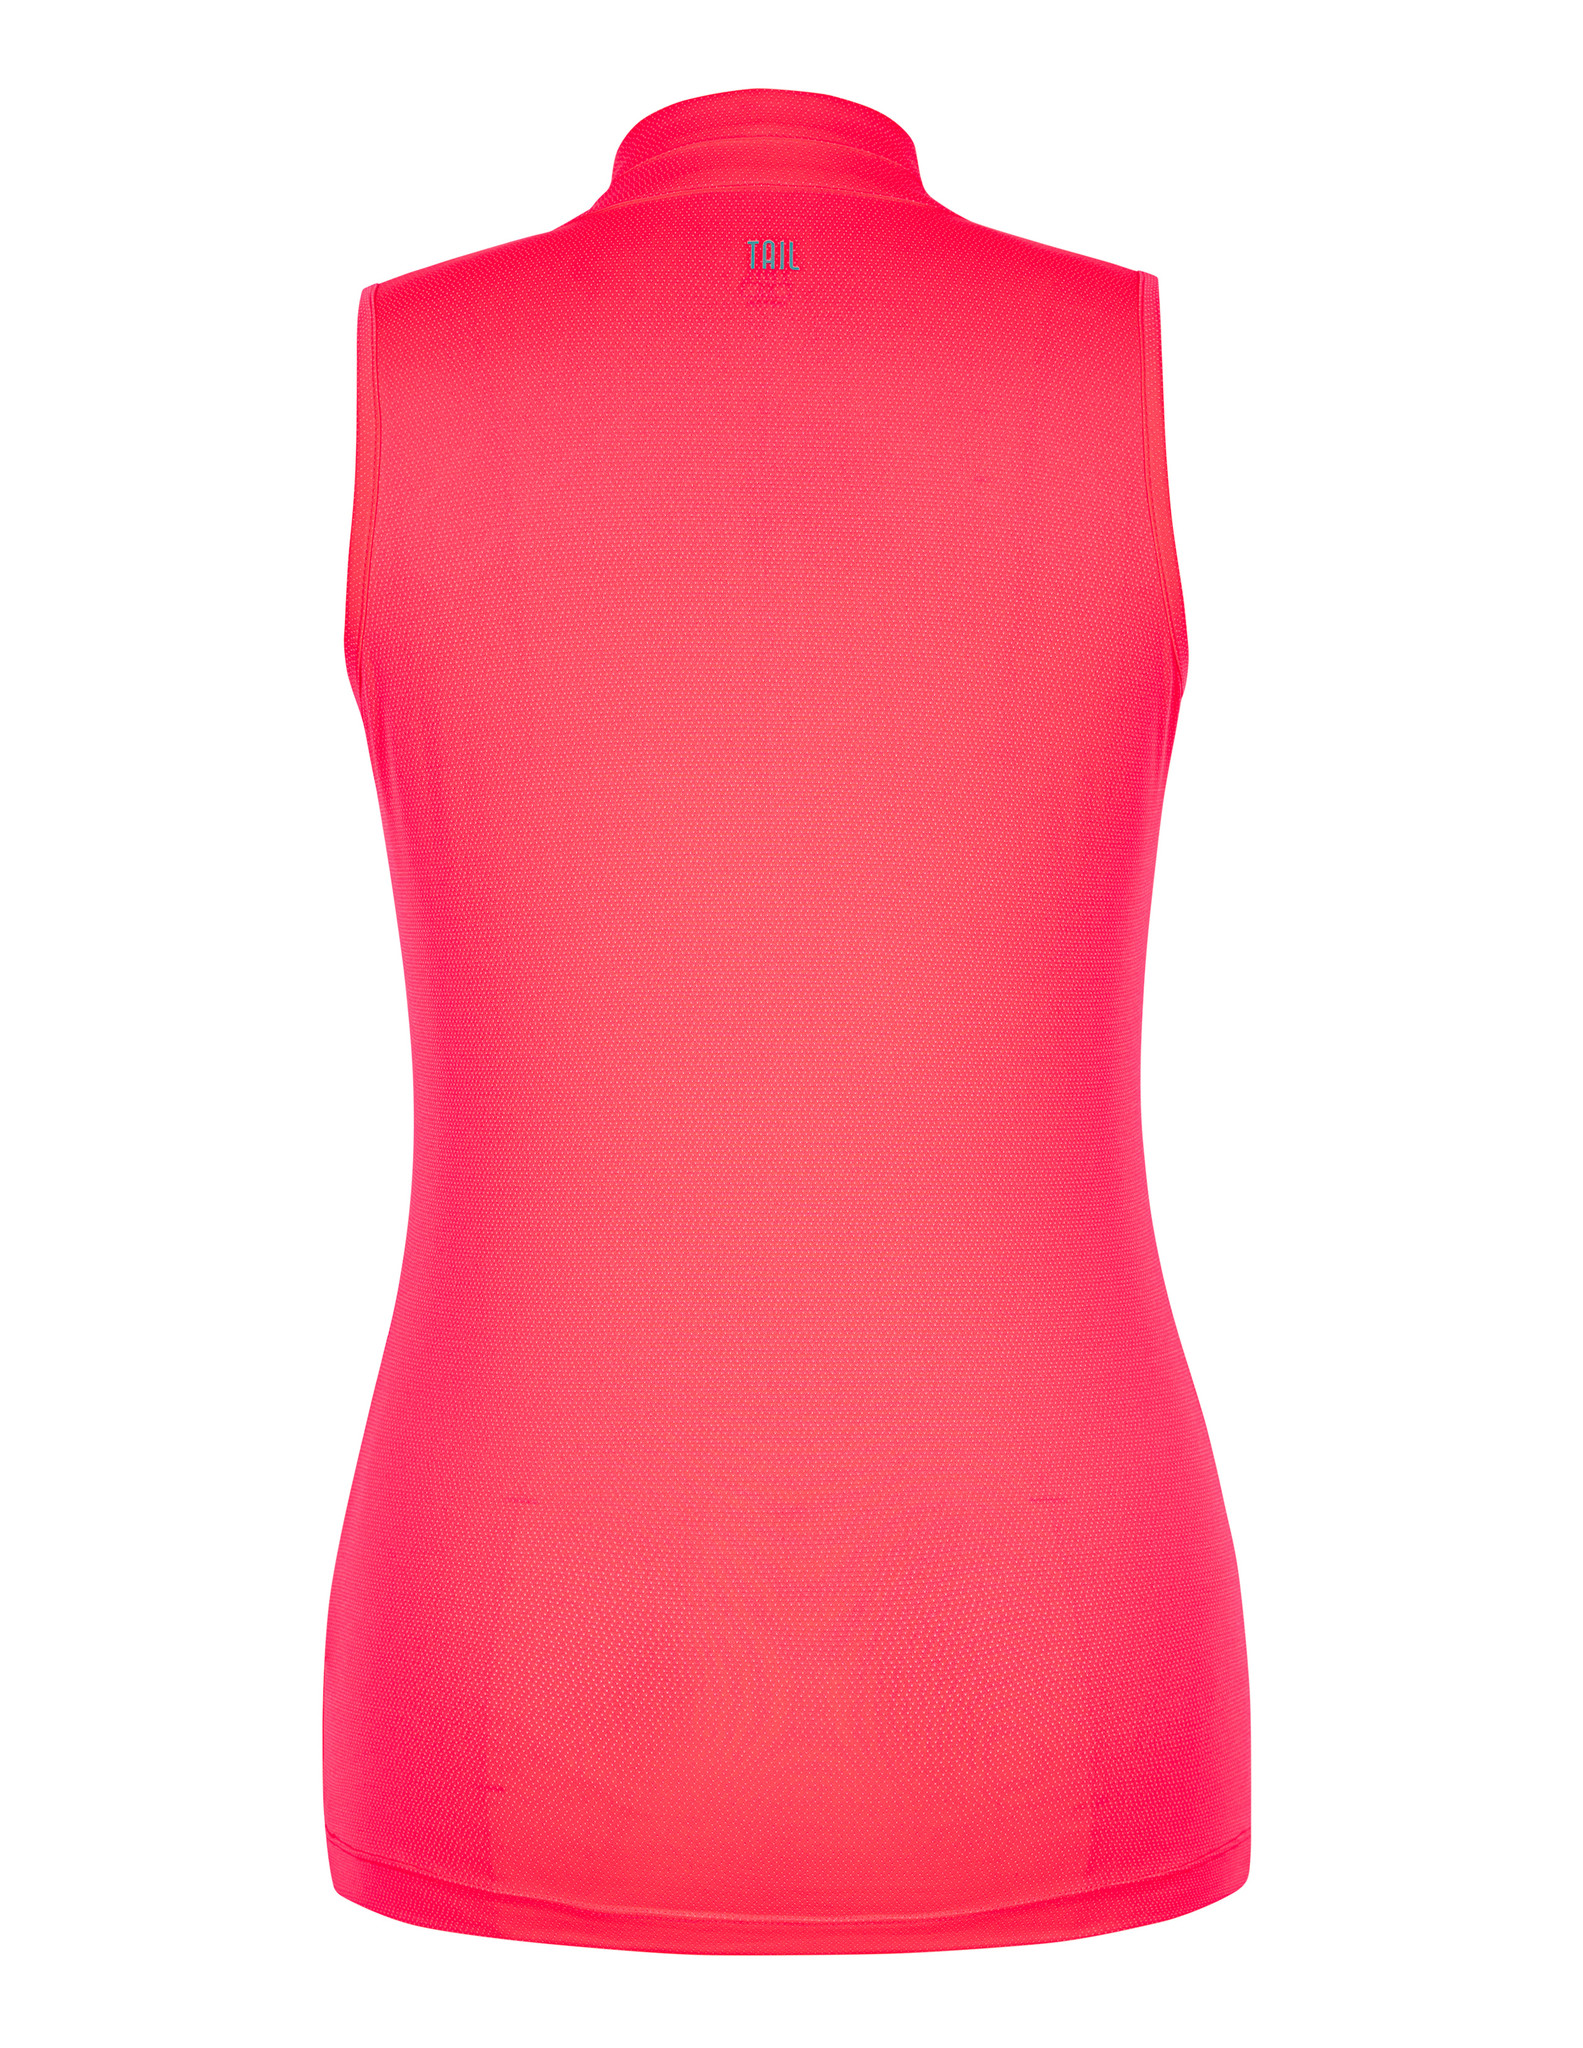 Tail Tail Averie Sleeveless Top Diva Pink